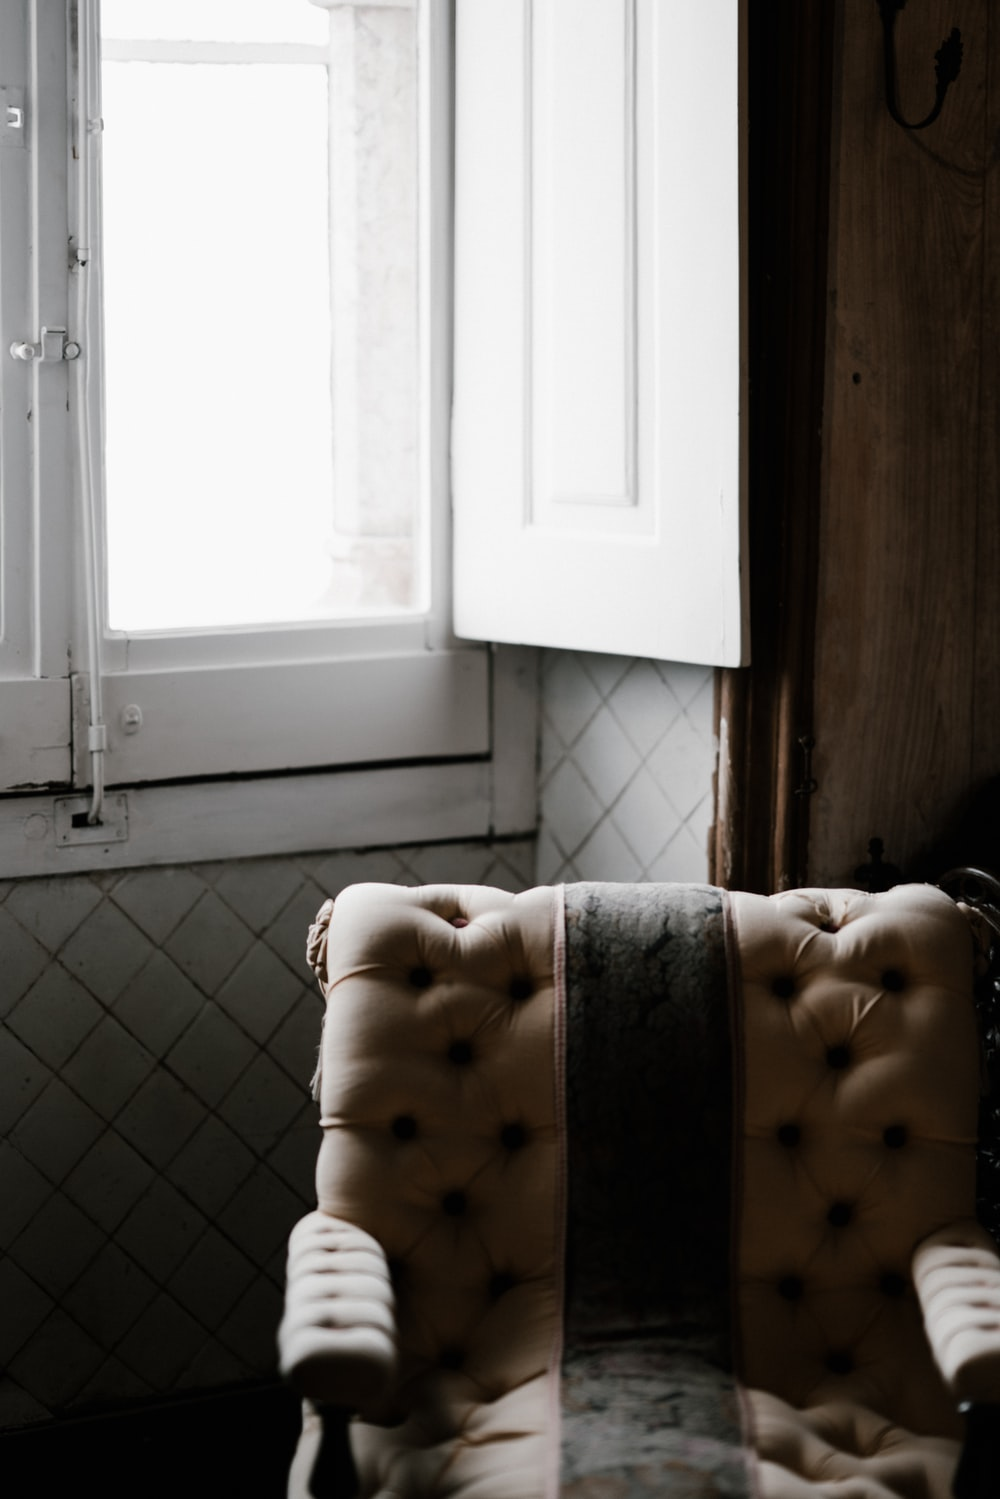 Chair By A Window On A Wet Day Hd Photo By Annie Spratt